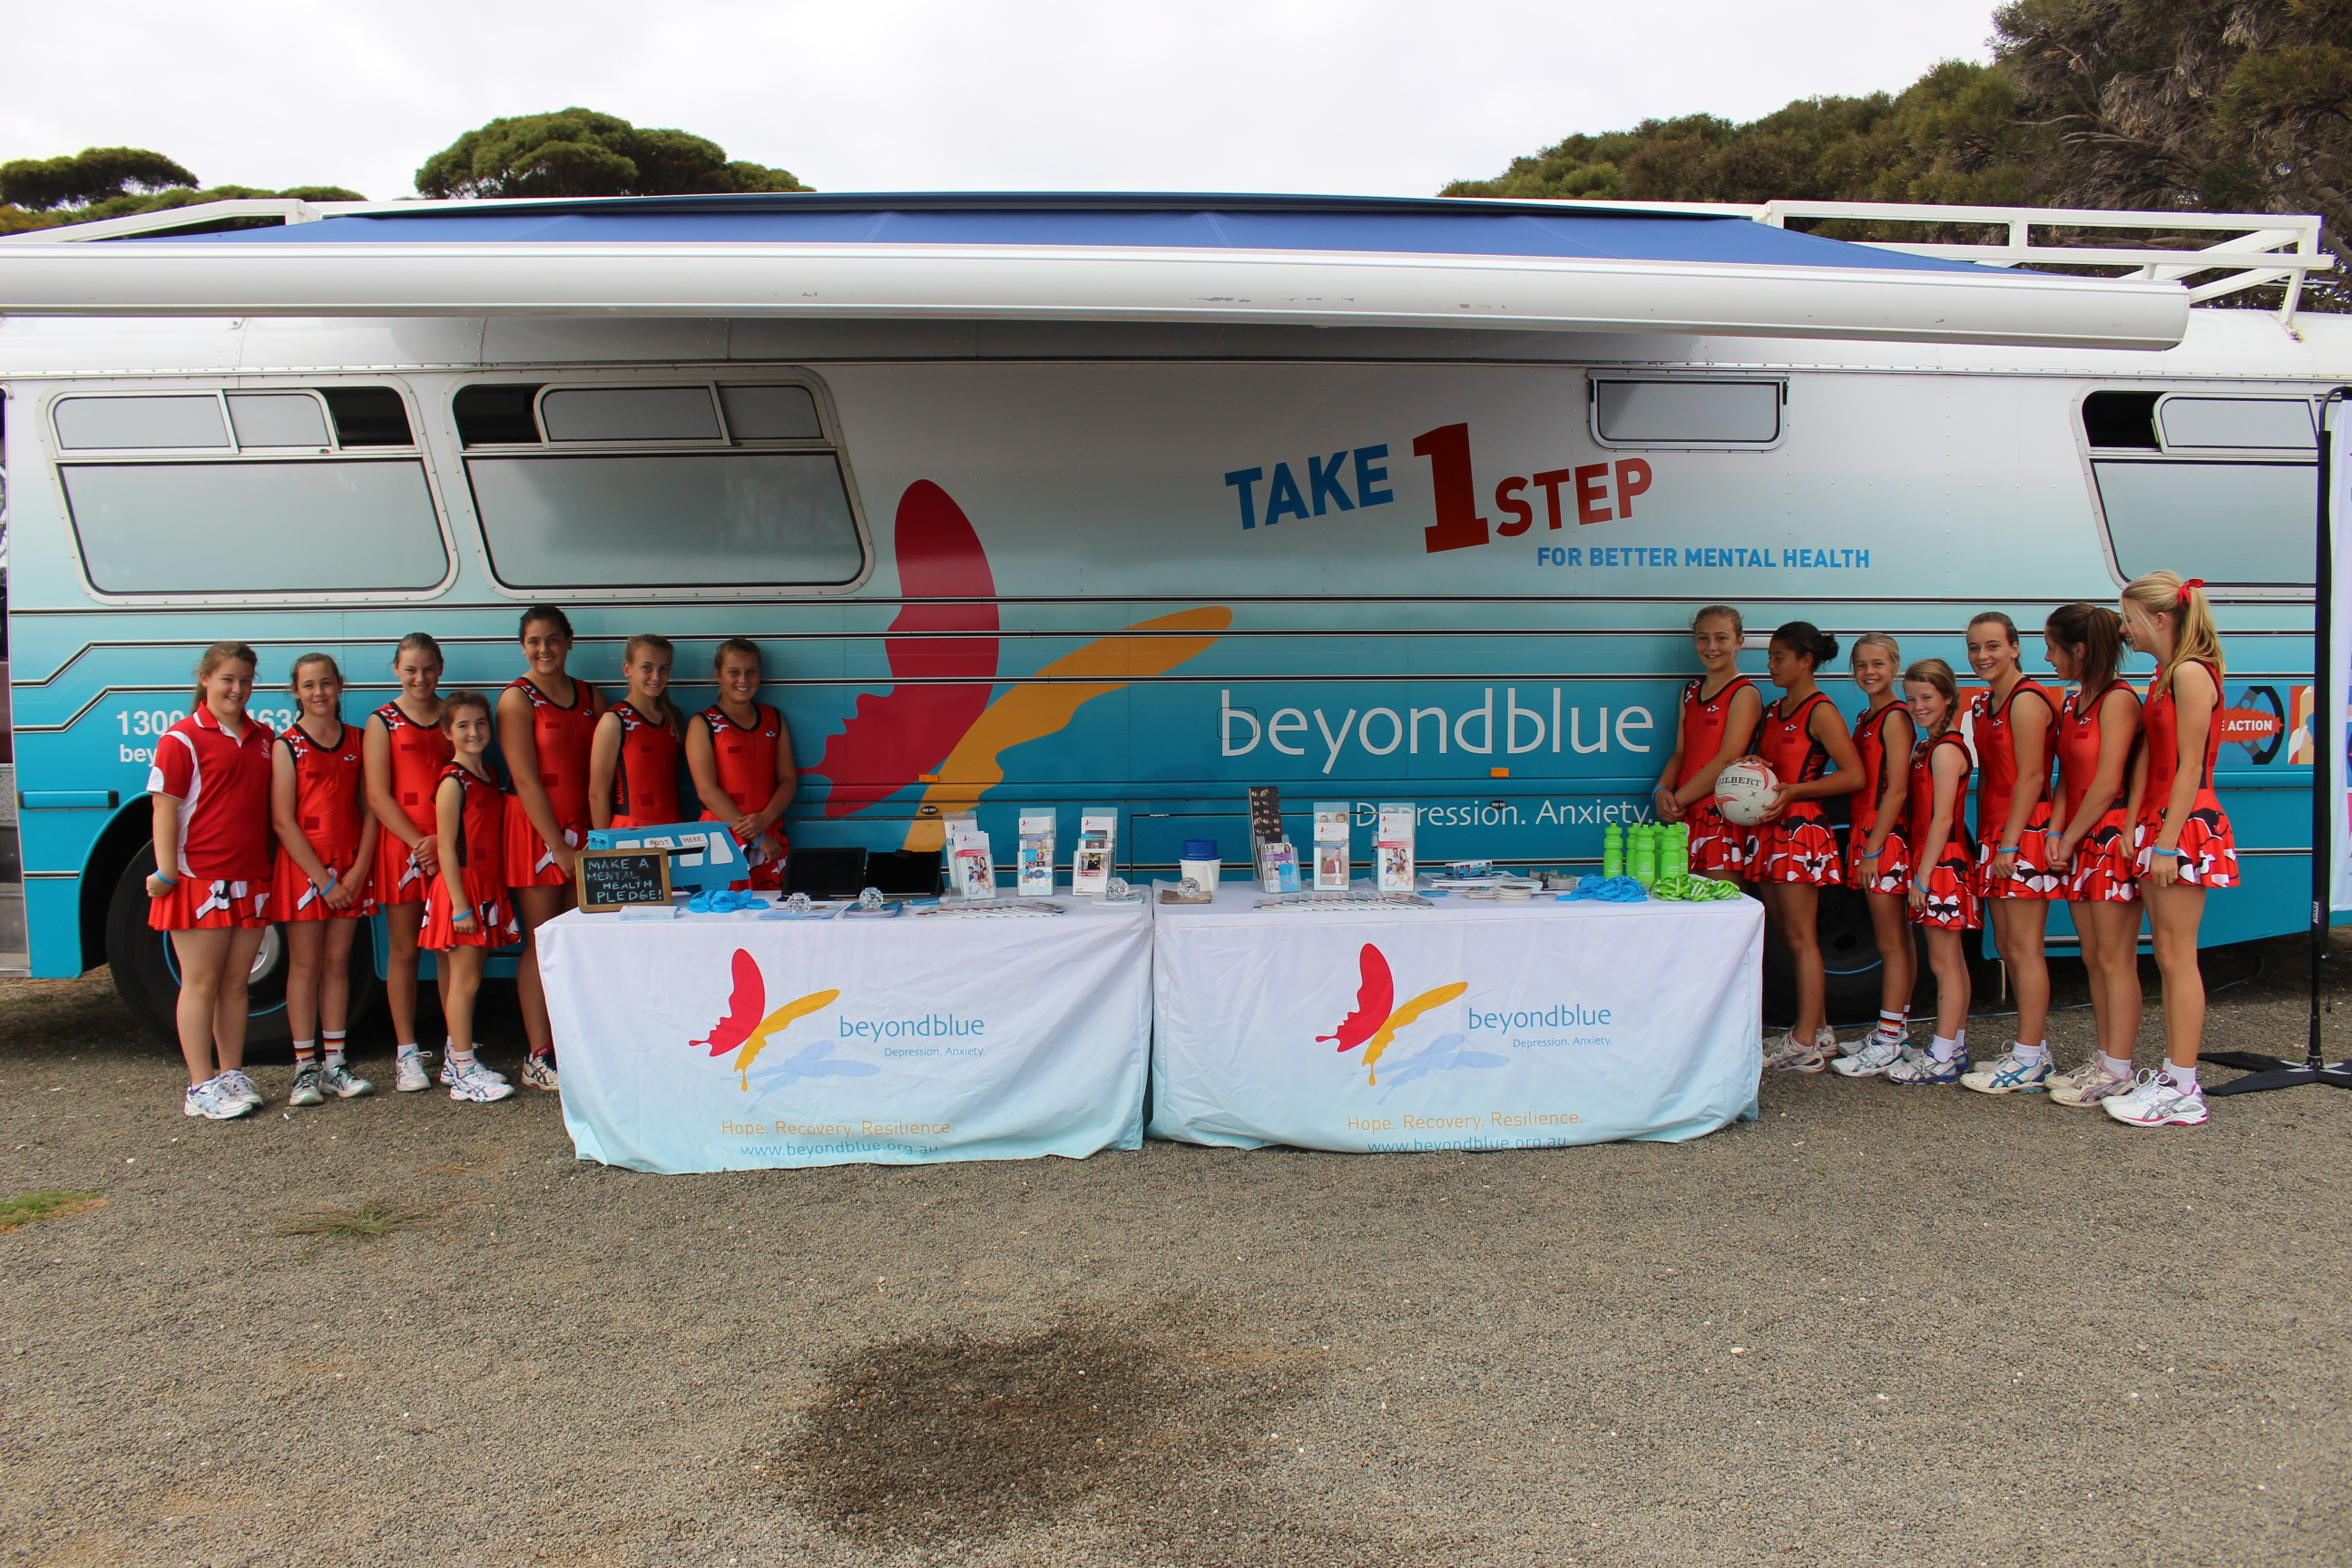 Junior netballers inspect the bus.